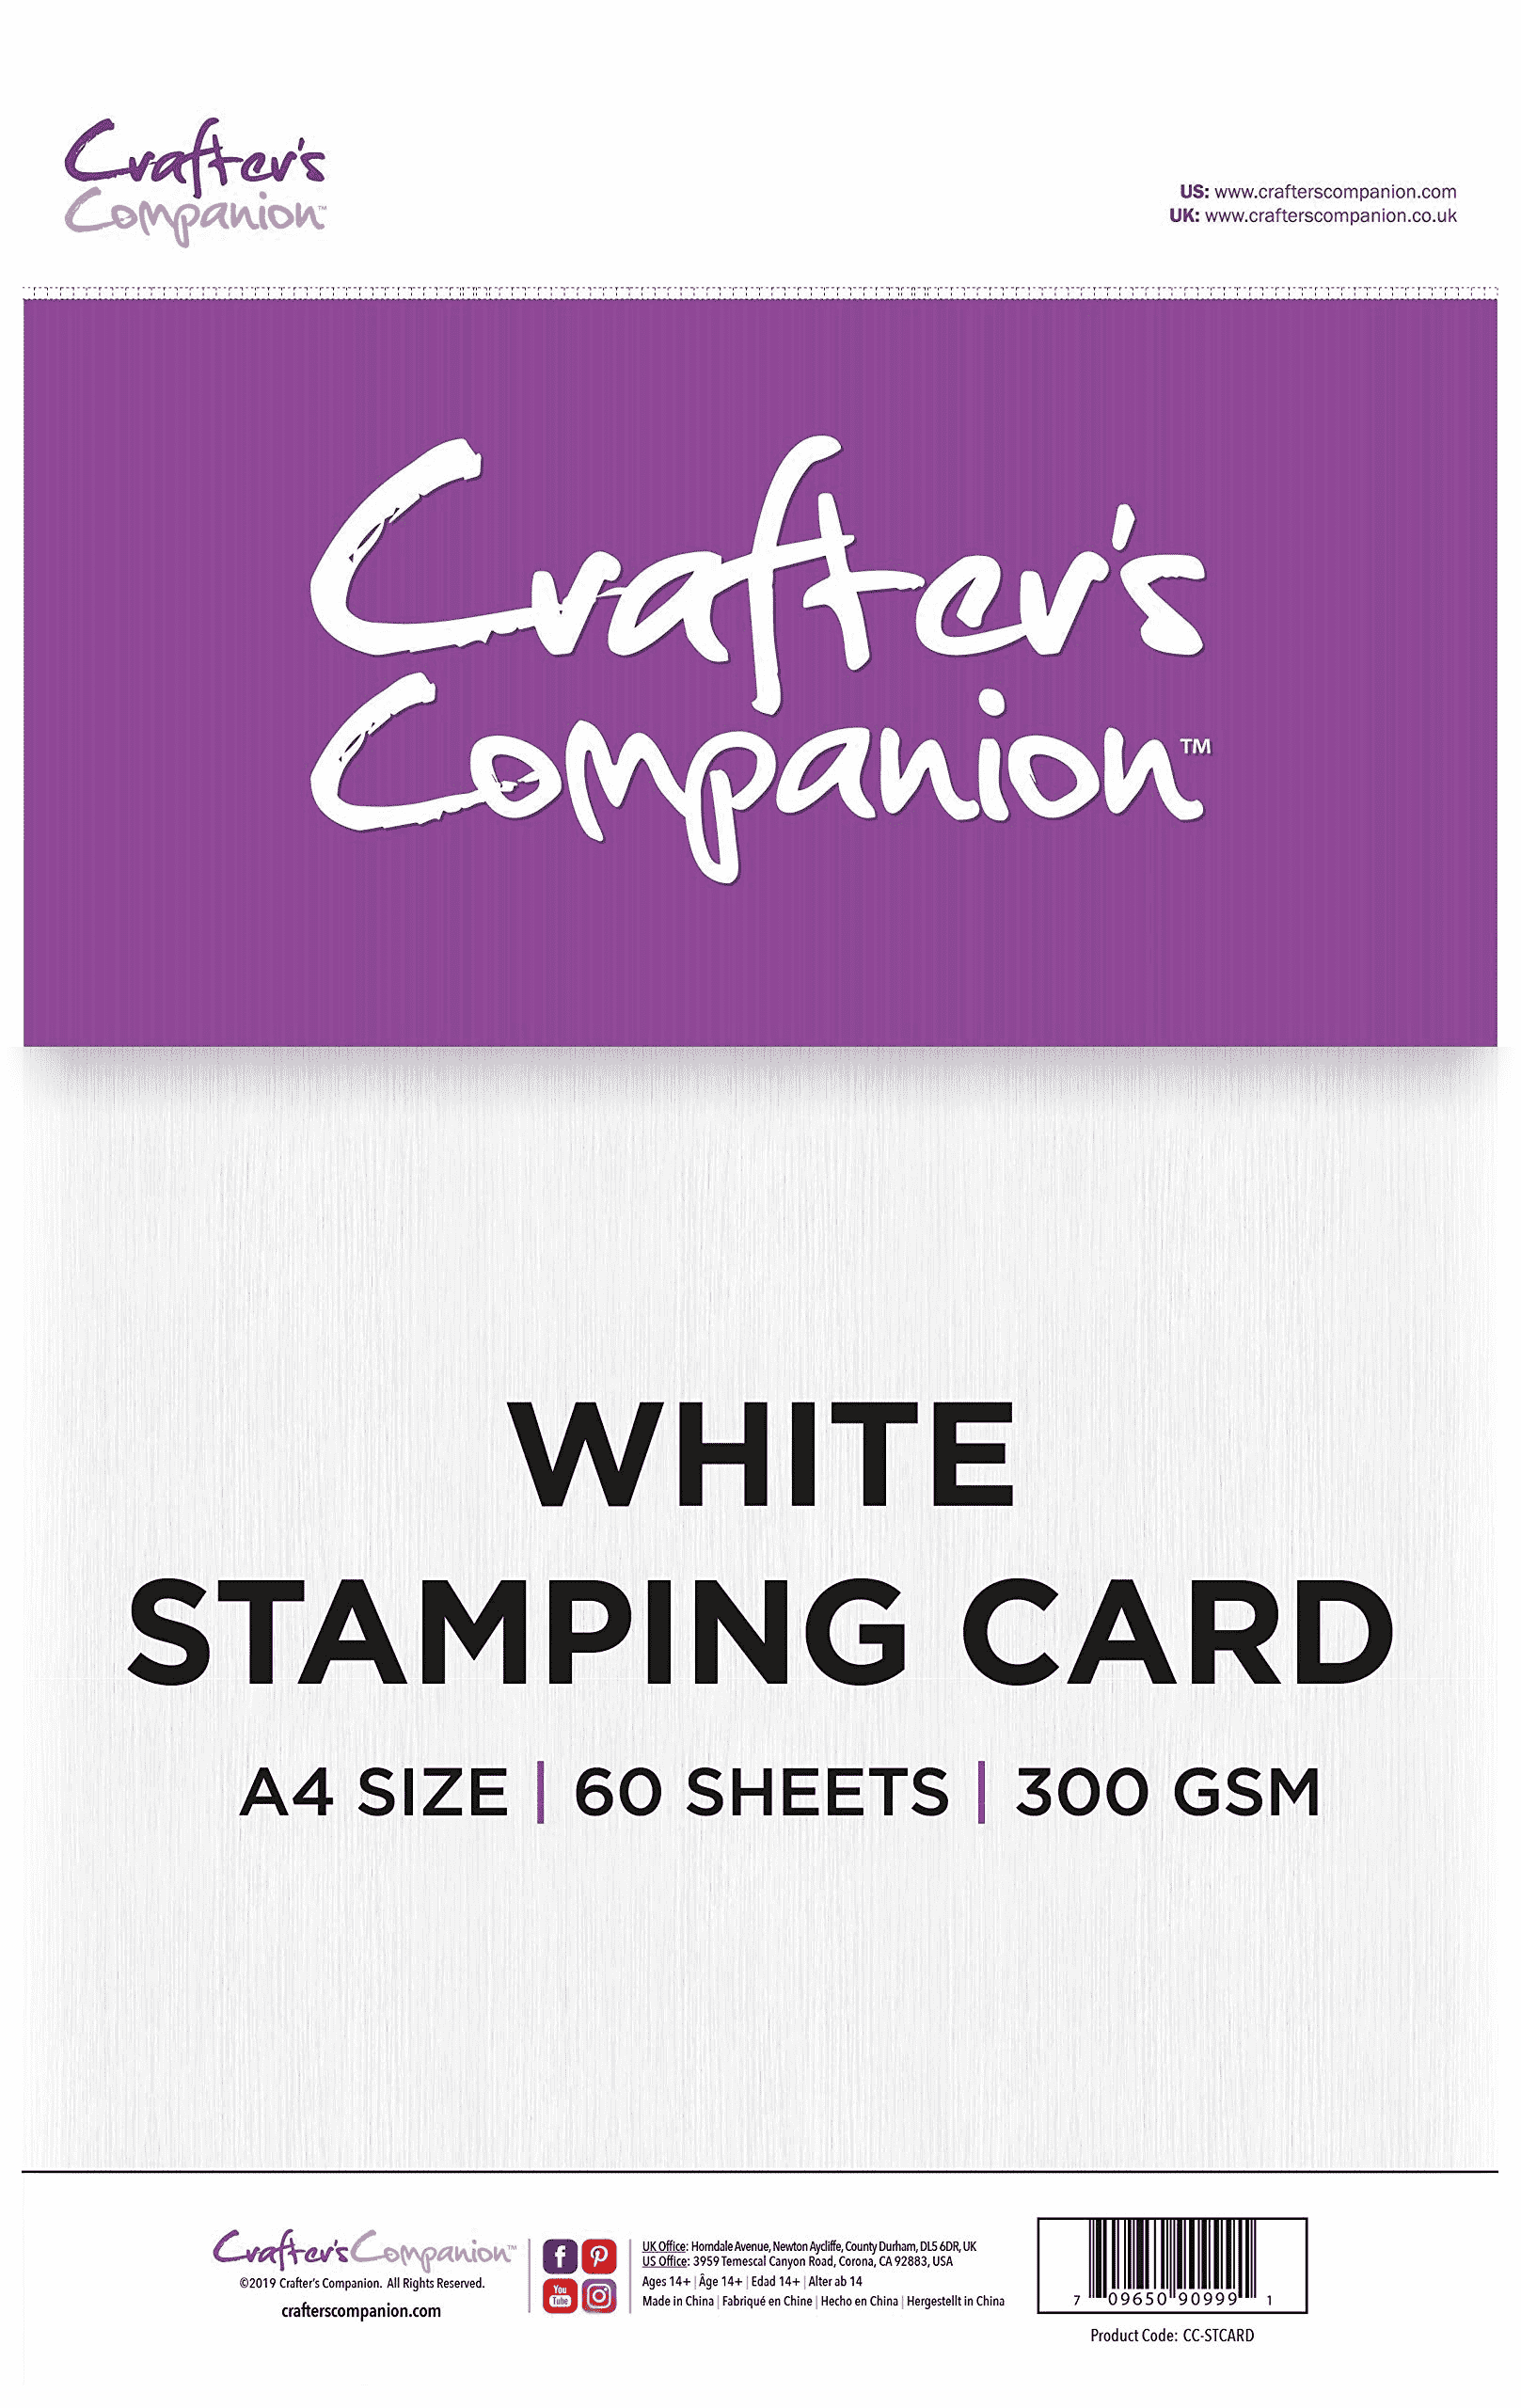 Crafter's Companion A4 White Stamping Card